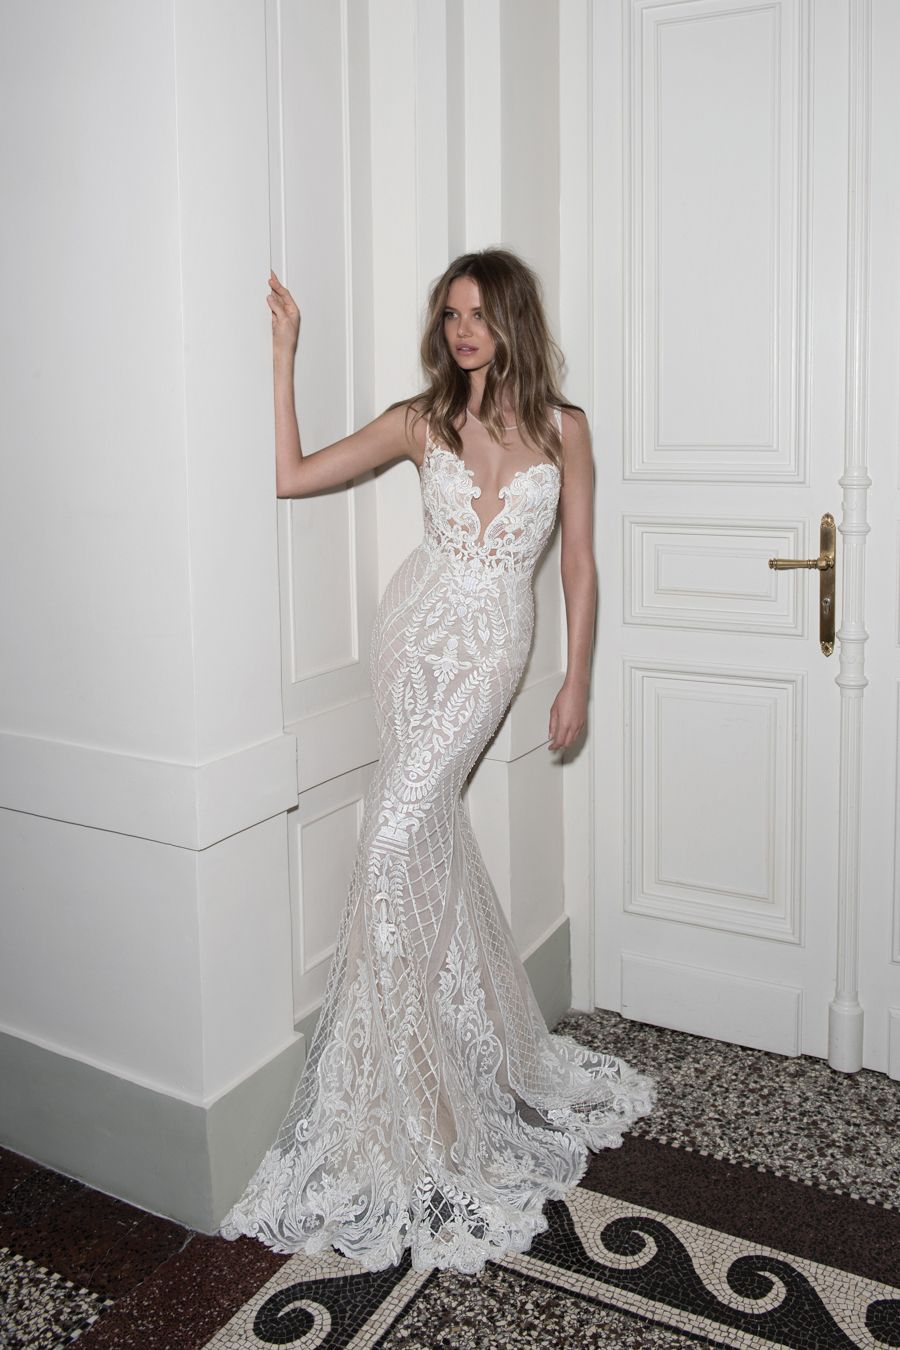 Berta Bridal 2015 Fall Wedding Gown Collection